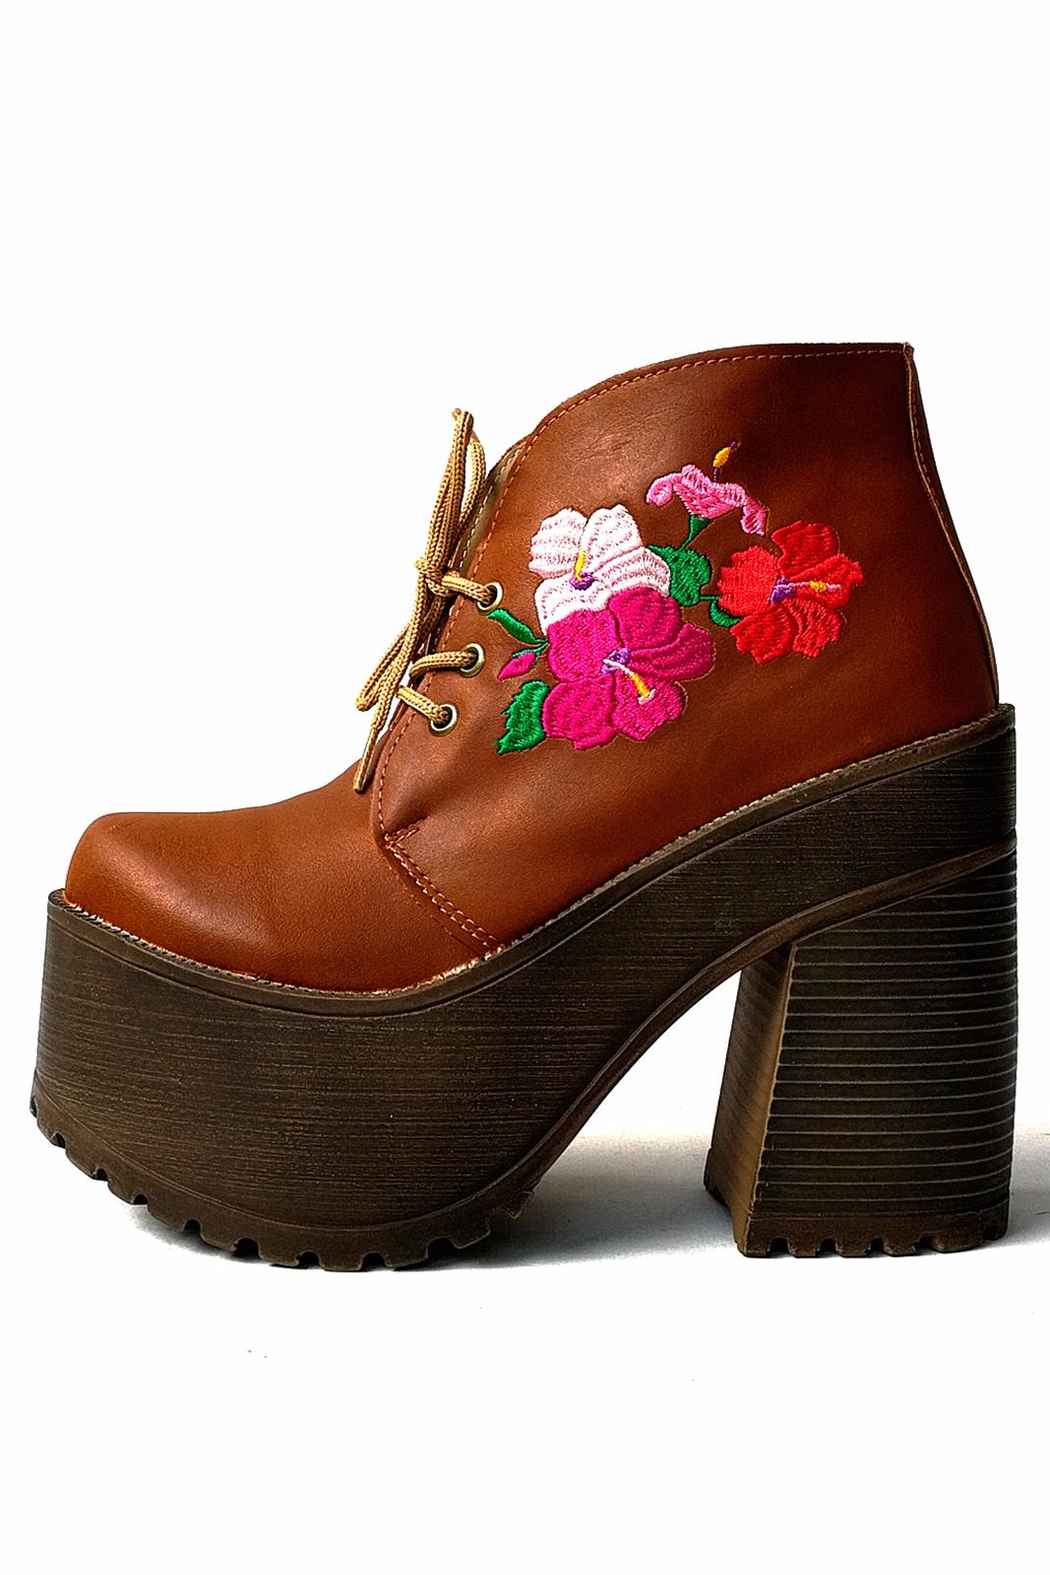 MIYE COLLAZZO Brown Embroidered Bootie - Main Image